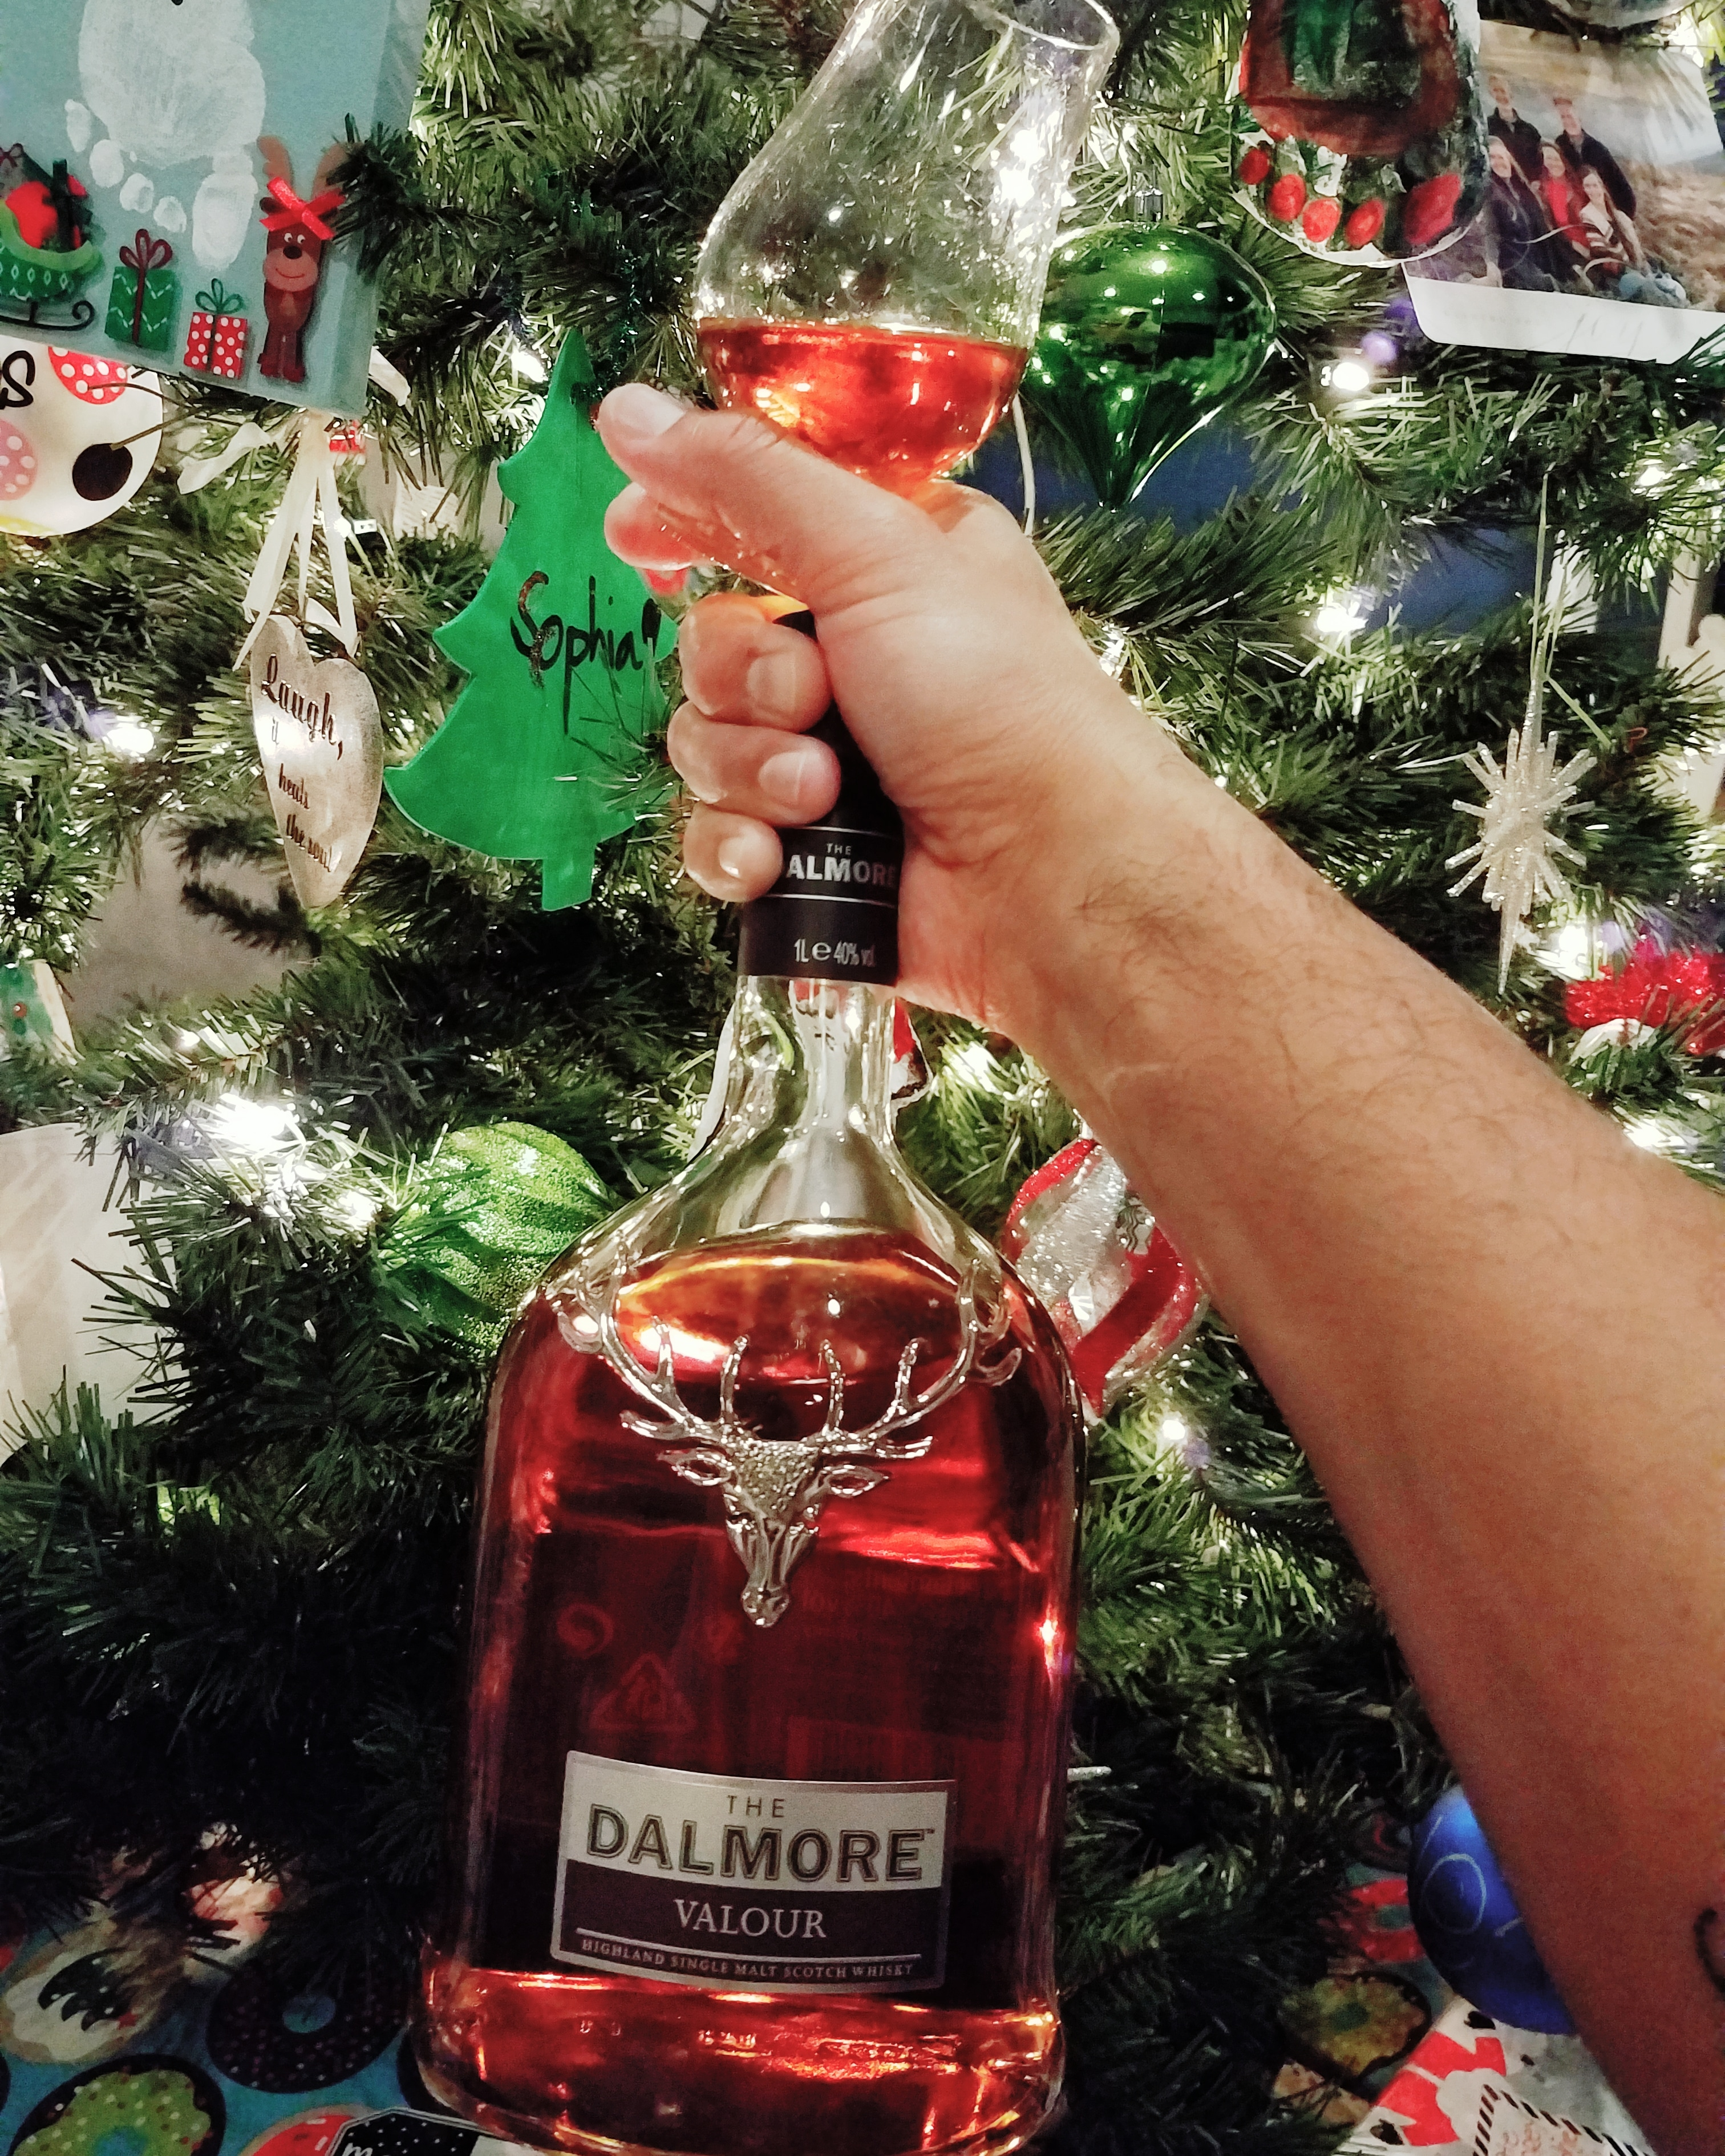 The Dalmore: Valour: JAWS Rating 8.4/10